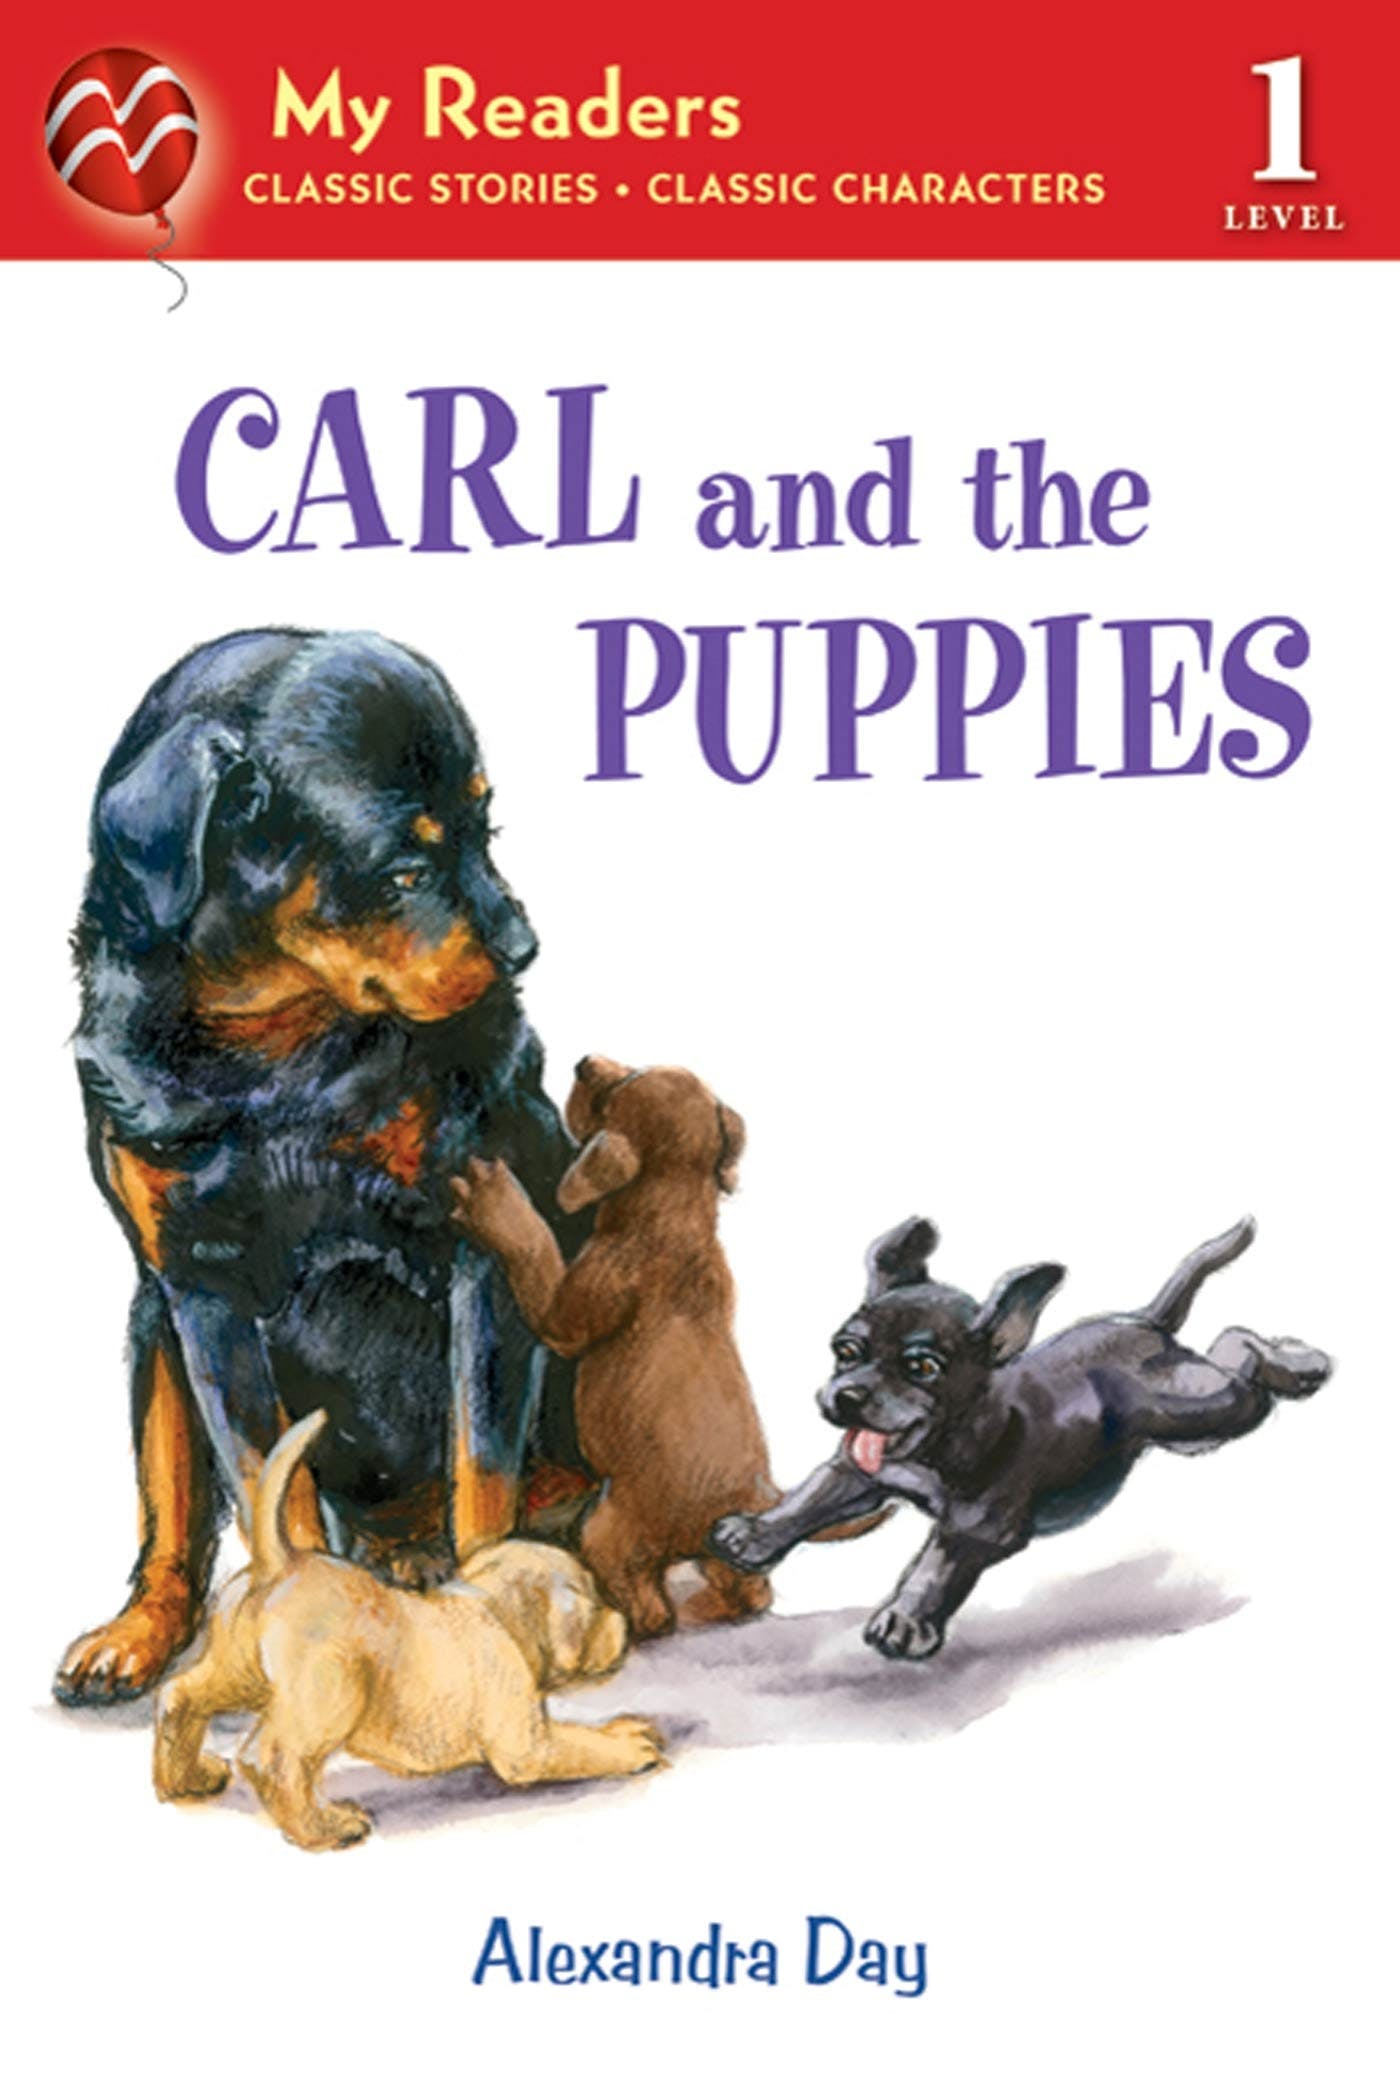 Image of Carl and the Puppies